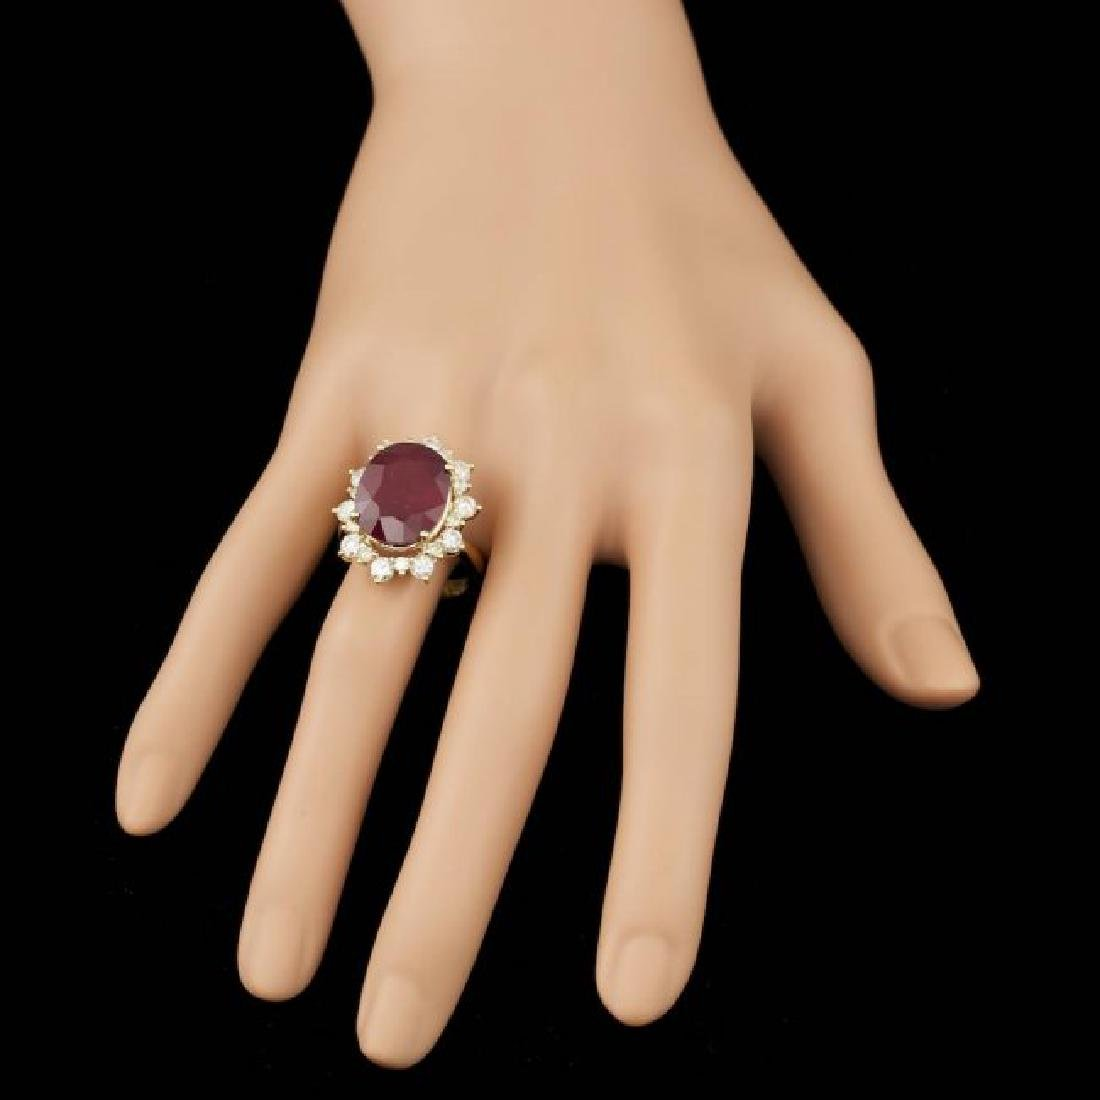 14k Yellow Gold 13.00ct Ruby 1.80ct Diamond Ring - 4